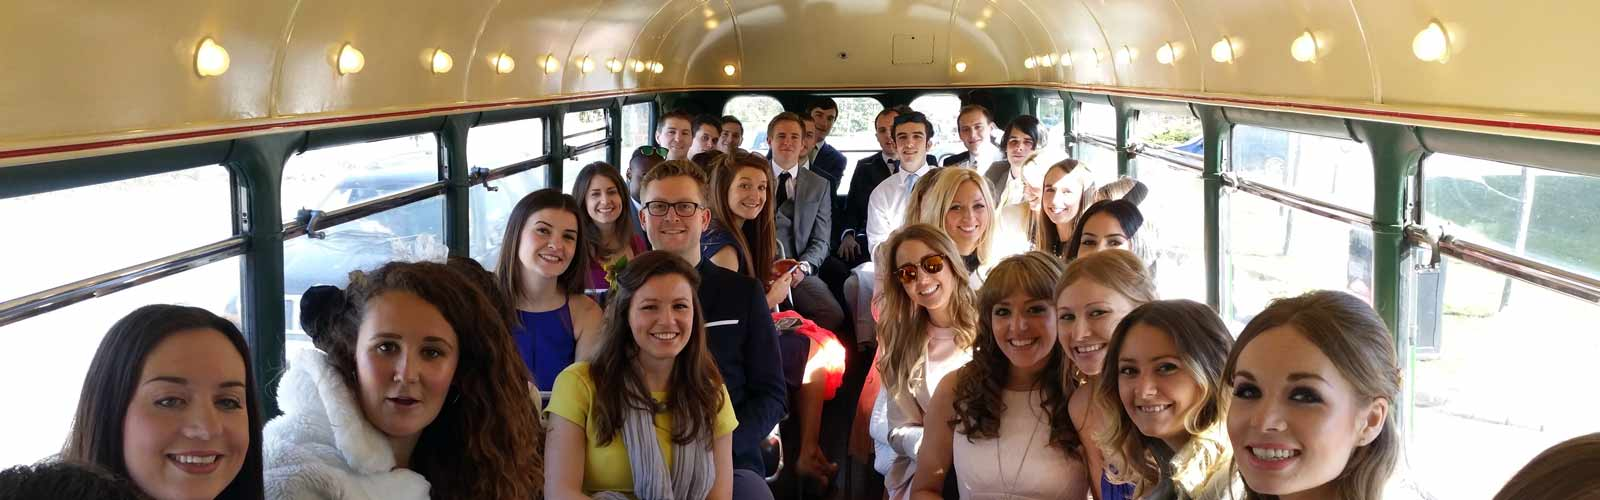 a smiling wedding party on board